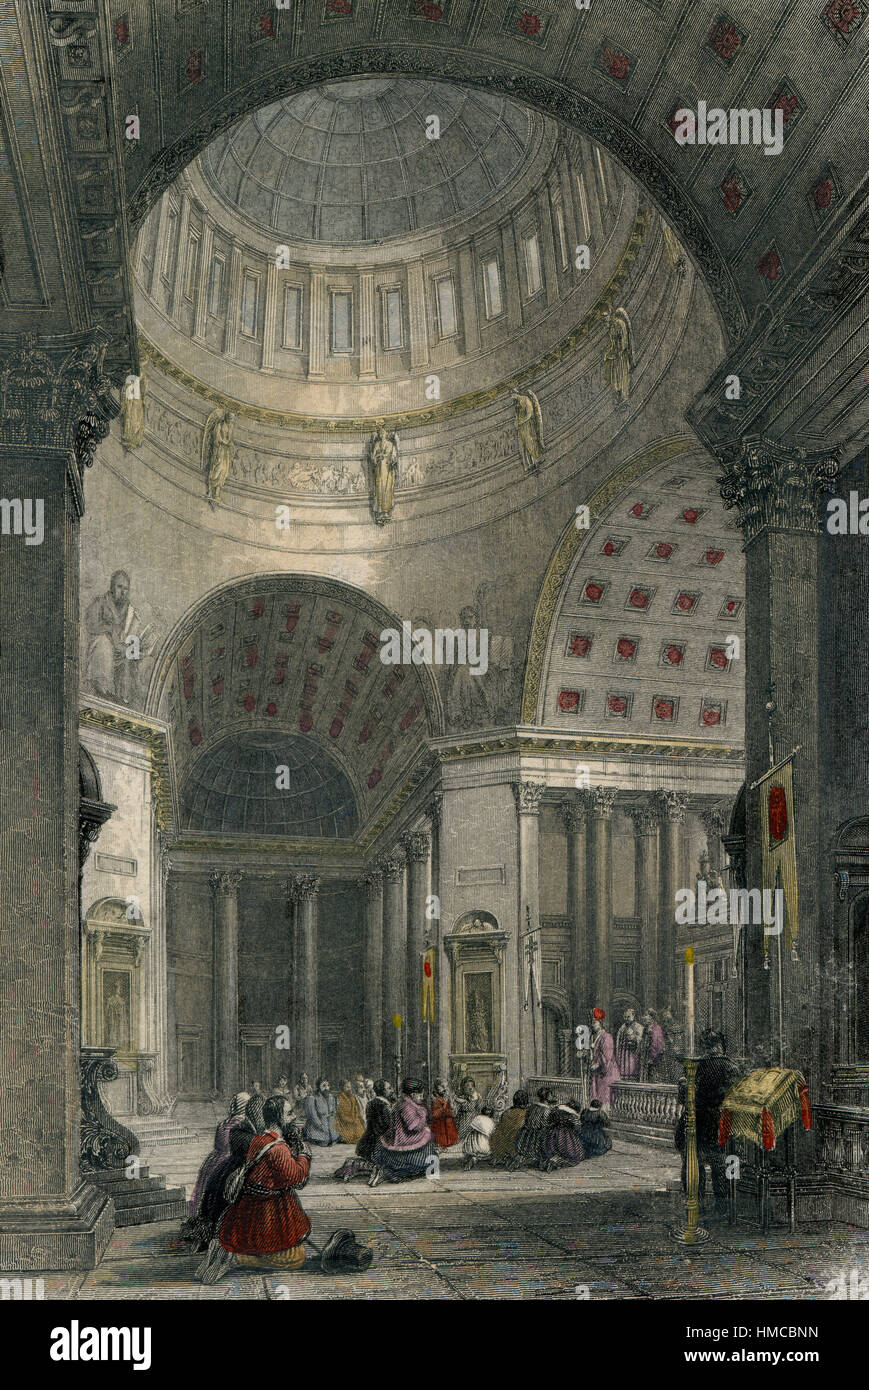 1830 Interior of Kazan Cathedral in St.Petersburg - Stock Image